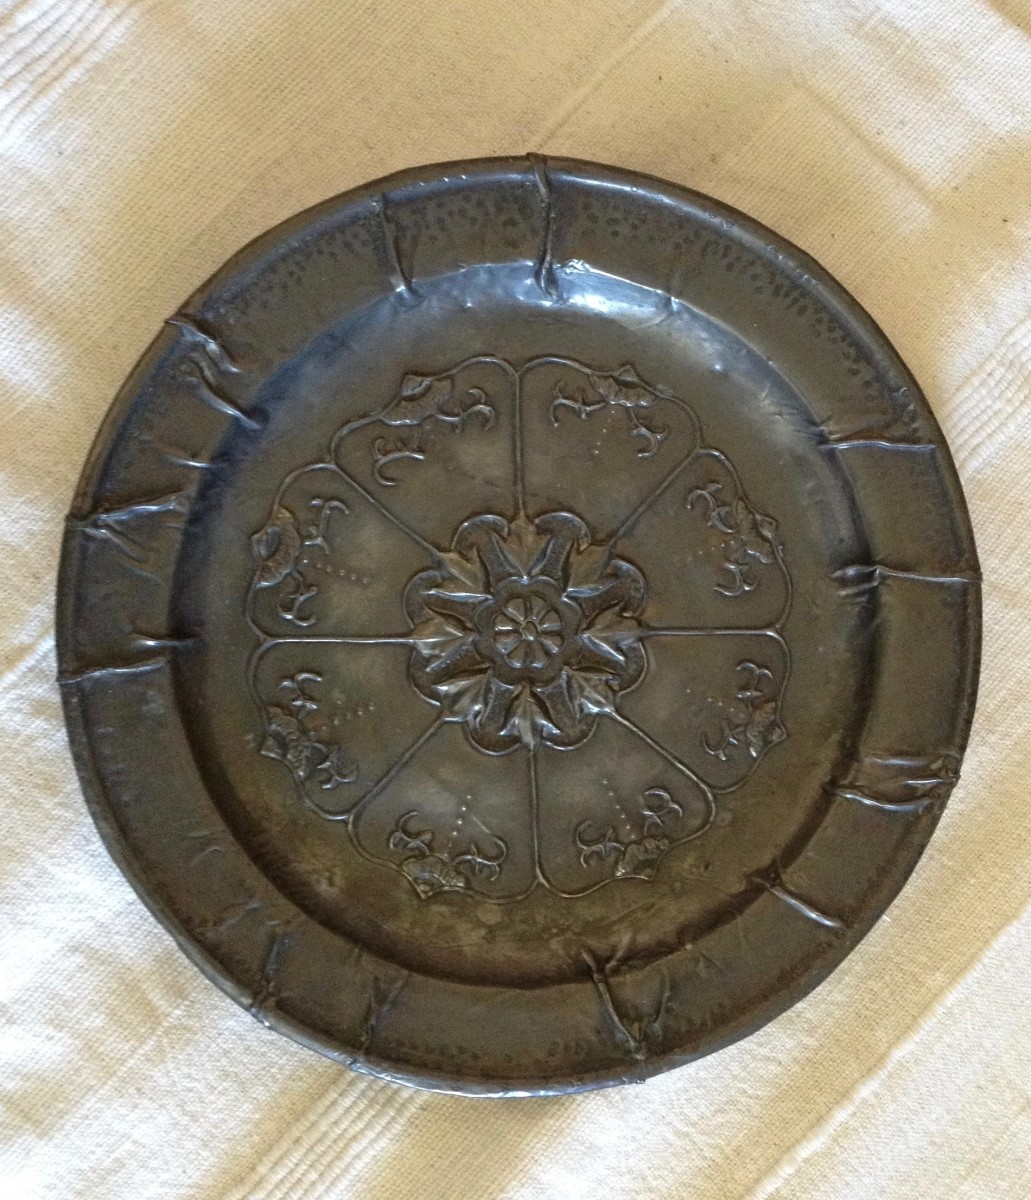 Plate, designed and stretched over a base.